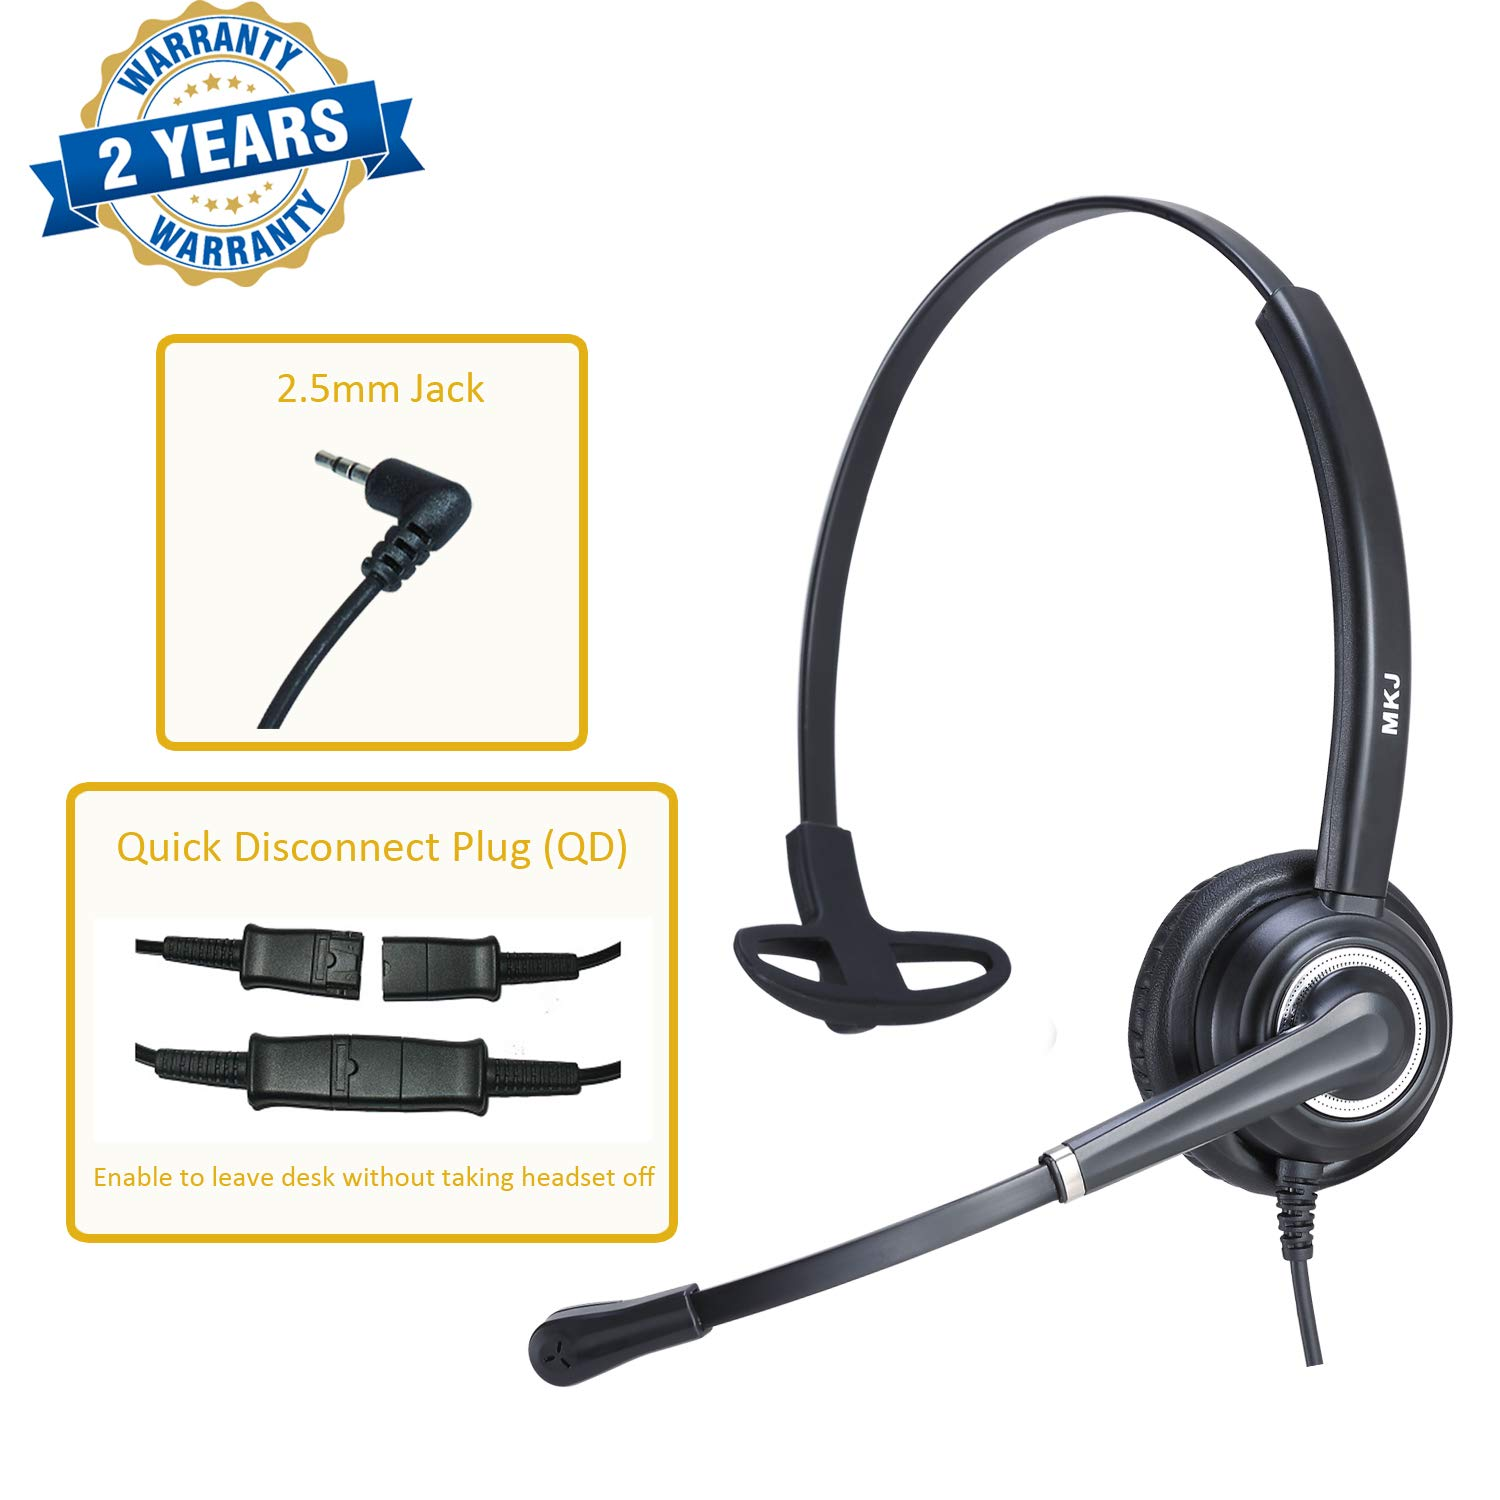 Corded 2.5mm Phone Headset with Noise Cancelling Microphone for Panasonic DECT 6.0 Phones KX-TGF380M KX-TGA680 Cisco SPA303 504G 512G AT&T Cordless TL86103 and Other Dect Telephone